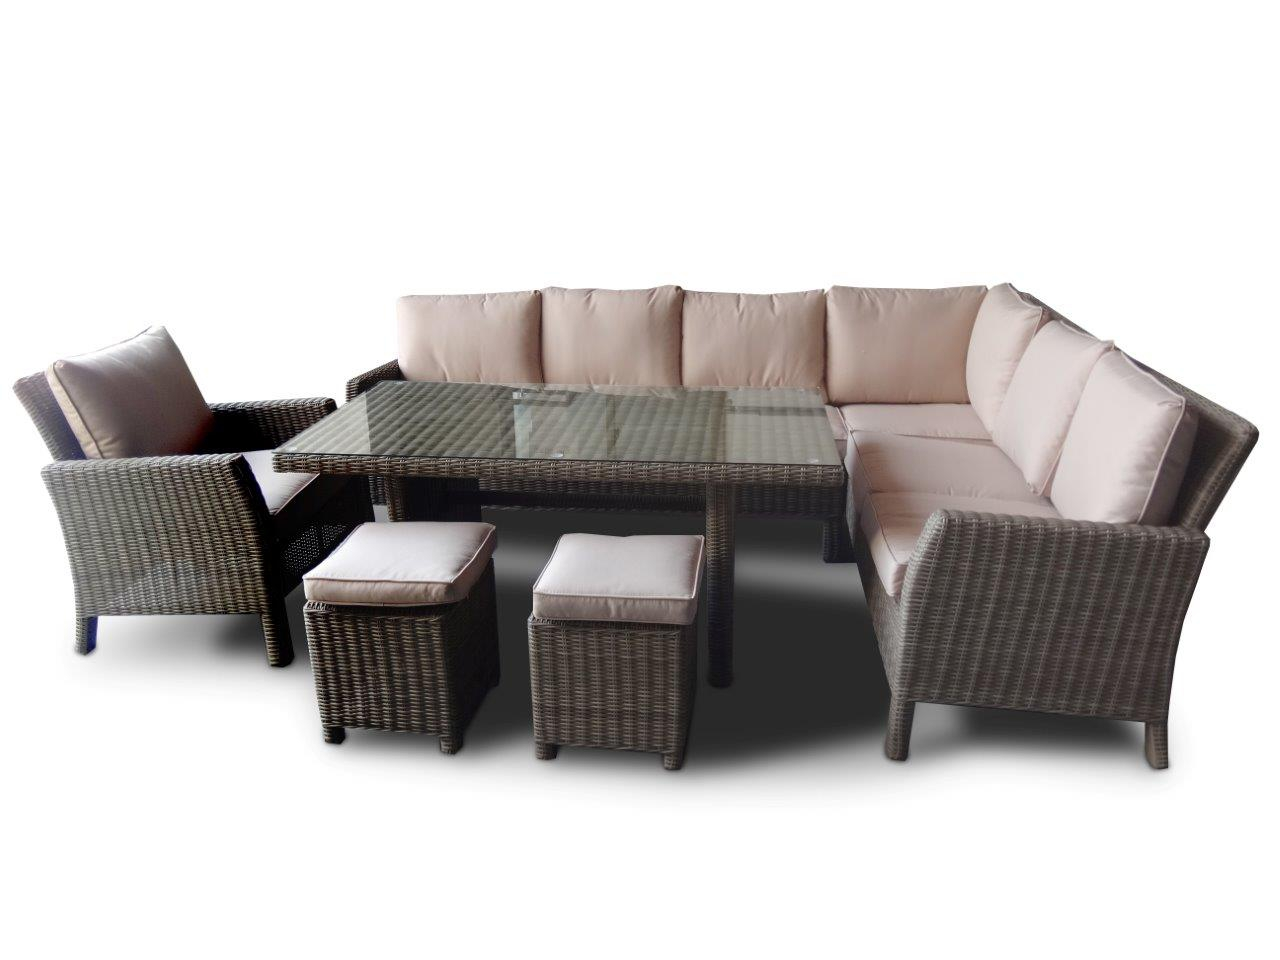 rattan gartentisch rattan sitzgruppe rattan ecklounge rattan lounge dining romeo natural round. Black Bedroom Furniture Sets. Home Design Ideas